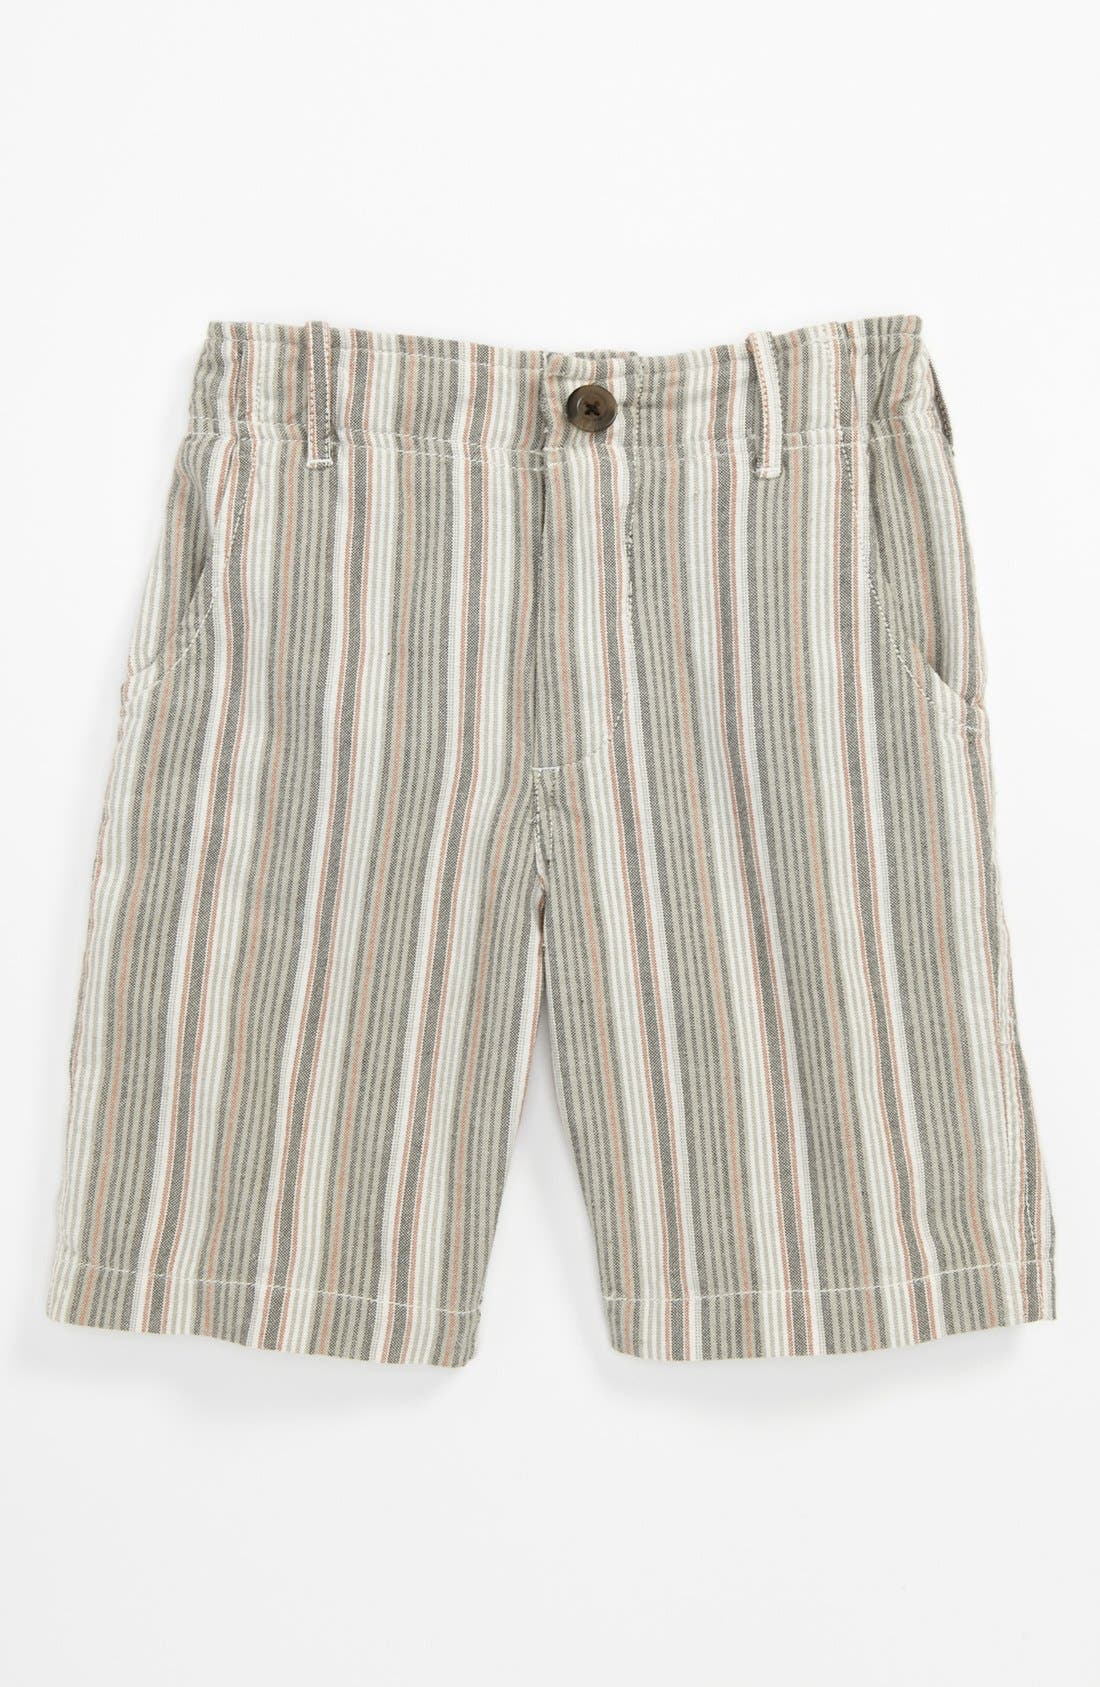 Alternate Image 1 Selected - Peek 'Benito' Stripe Shorts (Big Boys)